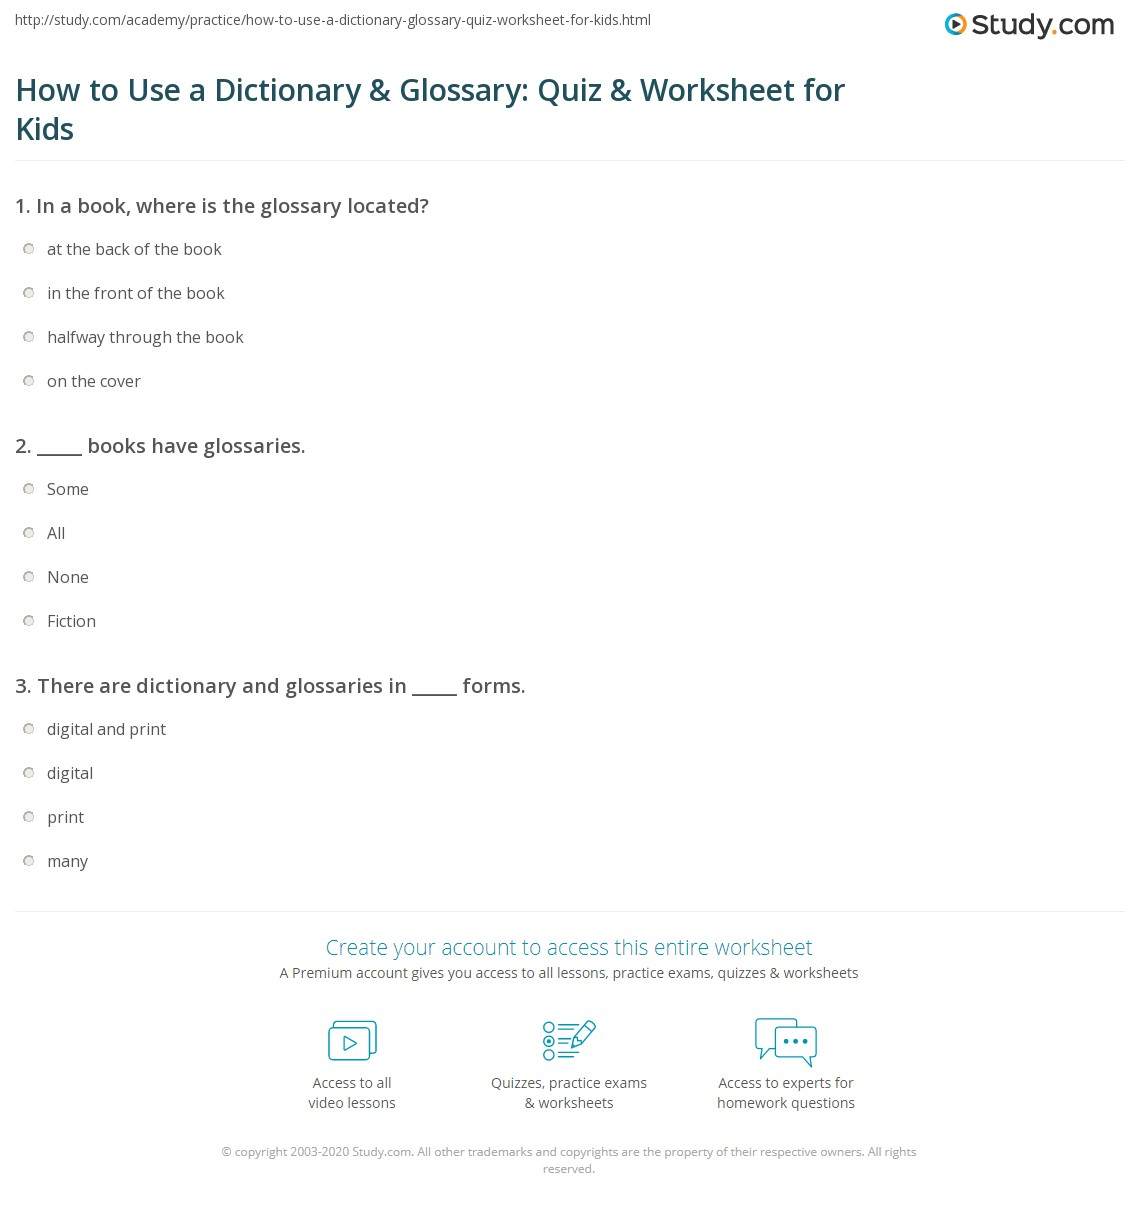 How to Use a Dictionary & Glossary: Quiz & Worksheet for Kids ...